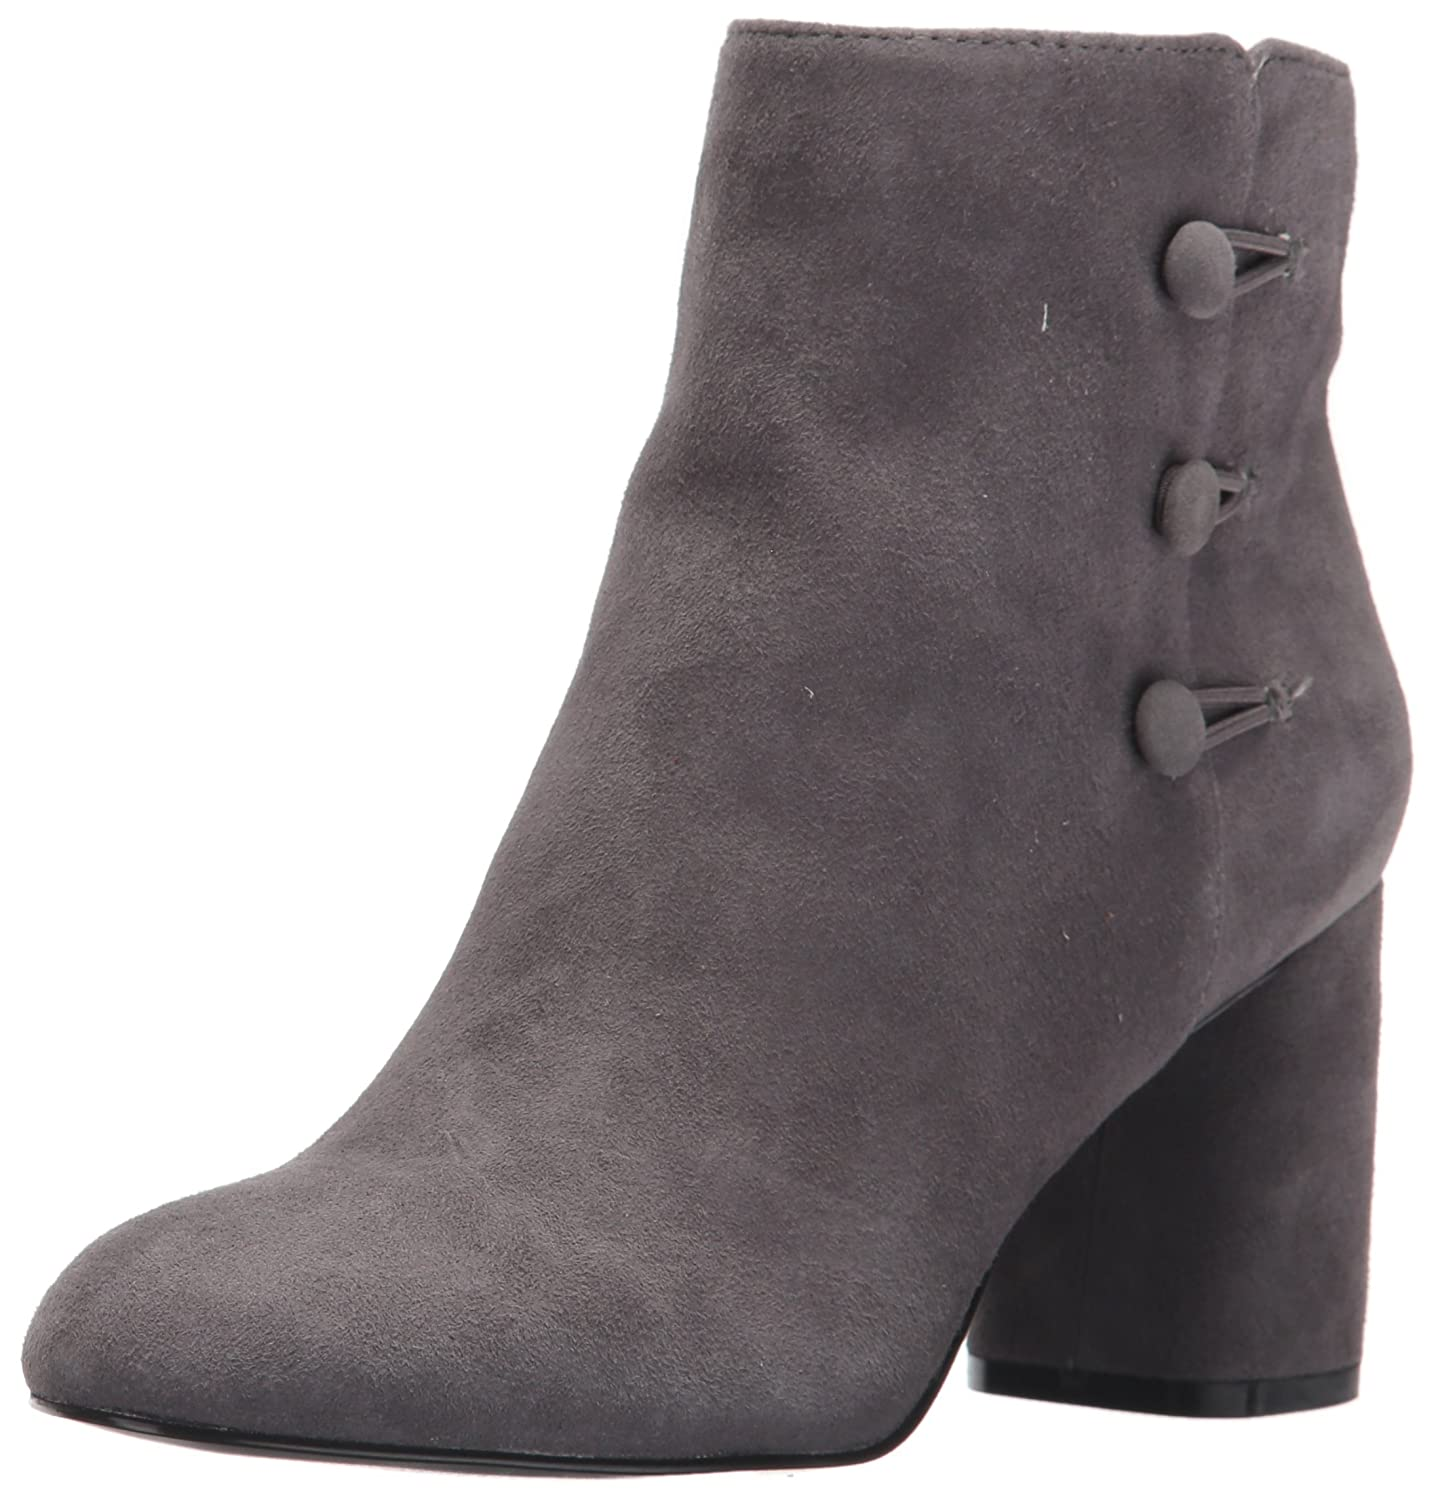 Nine West Women's Khraine Suede Ankle Boot B071HQGSBX 11 B(M) US|Grey/Grey Suede